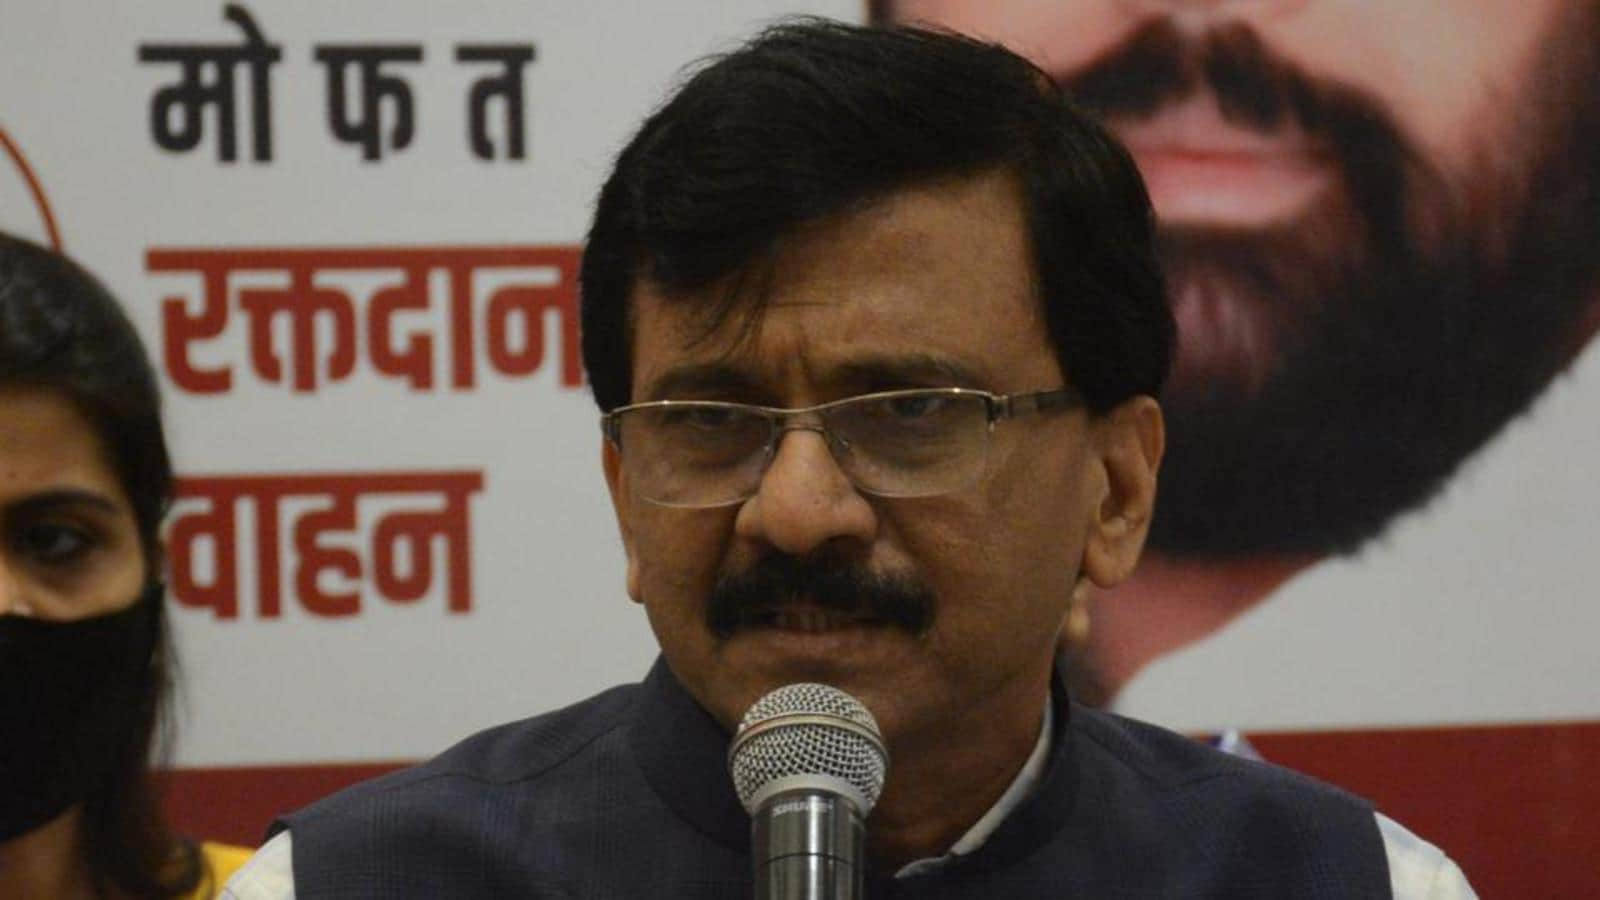 Contract killings replaced by 'govt killings' to end opponents, Shiv Sena slams Centre